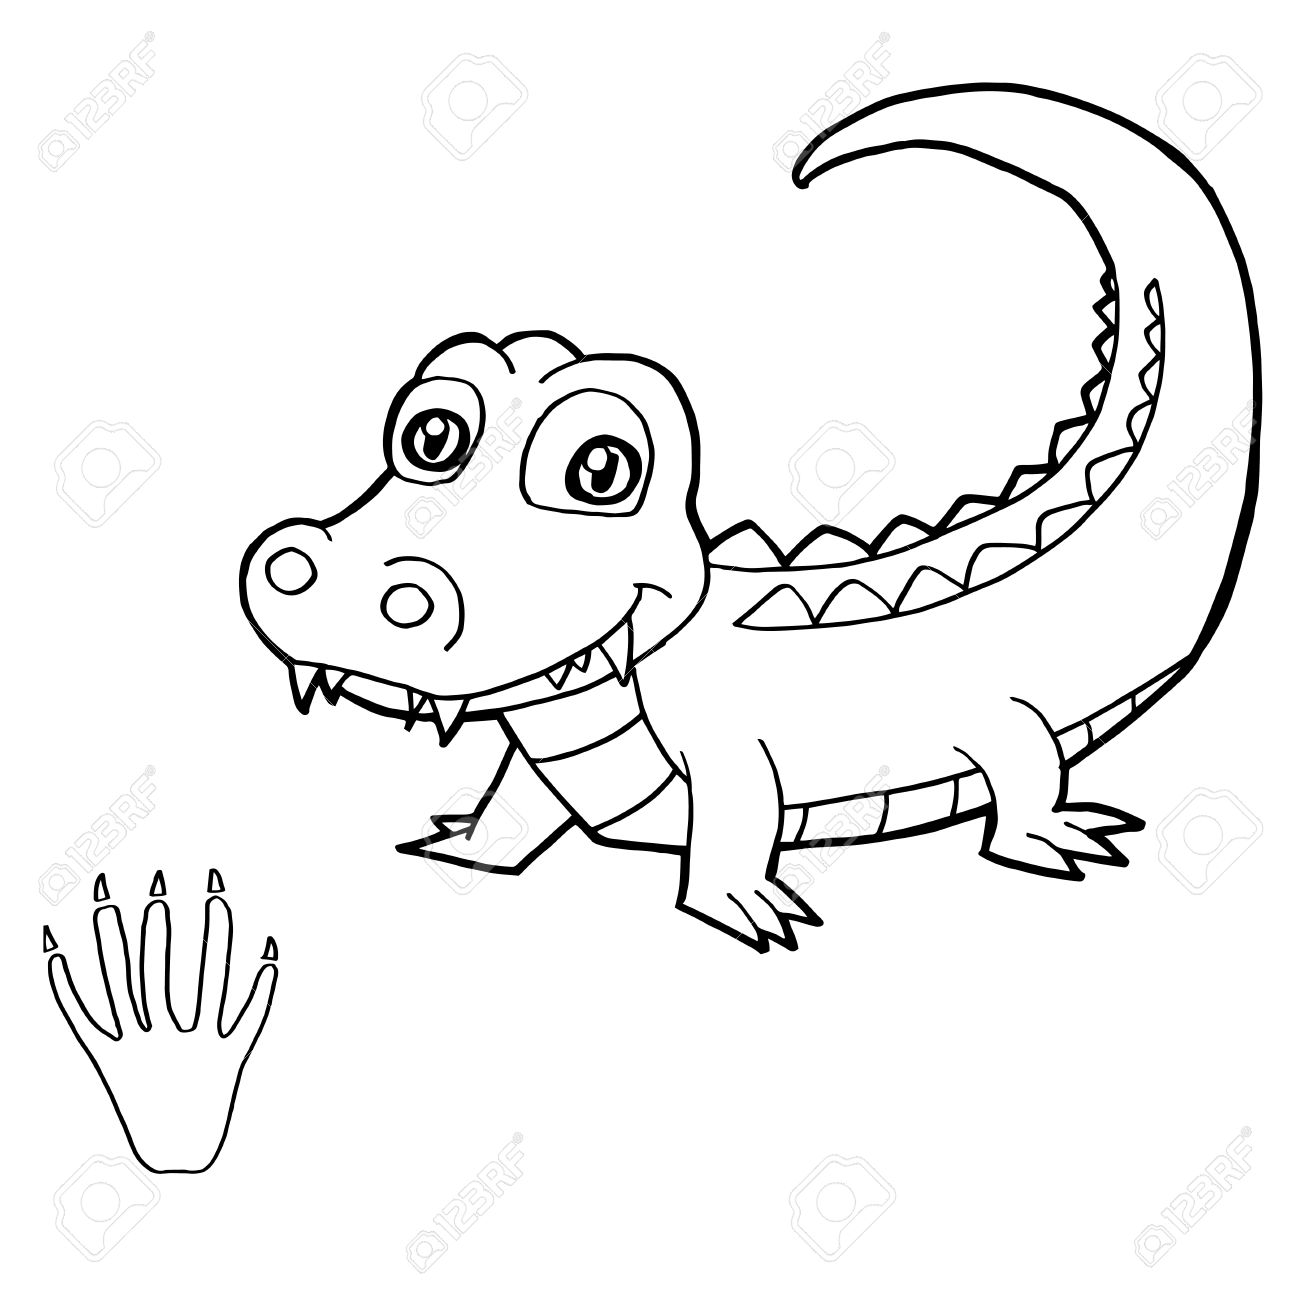 Uncategorized Crocodile Coloring Pages To Print paw print with crocodile coloring pages vector royalty free stock 45880612